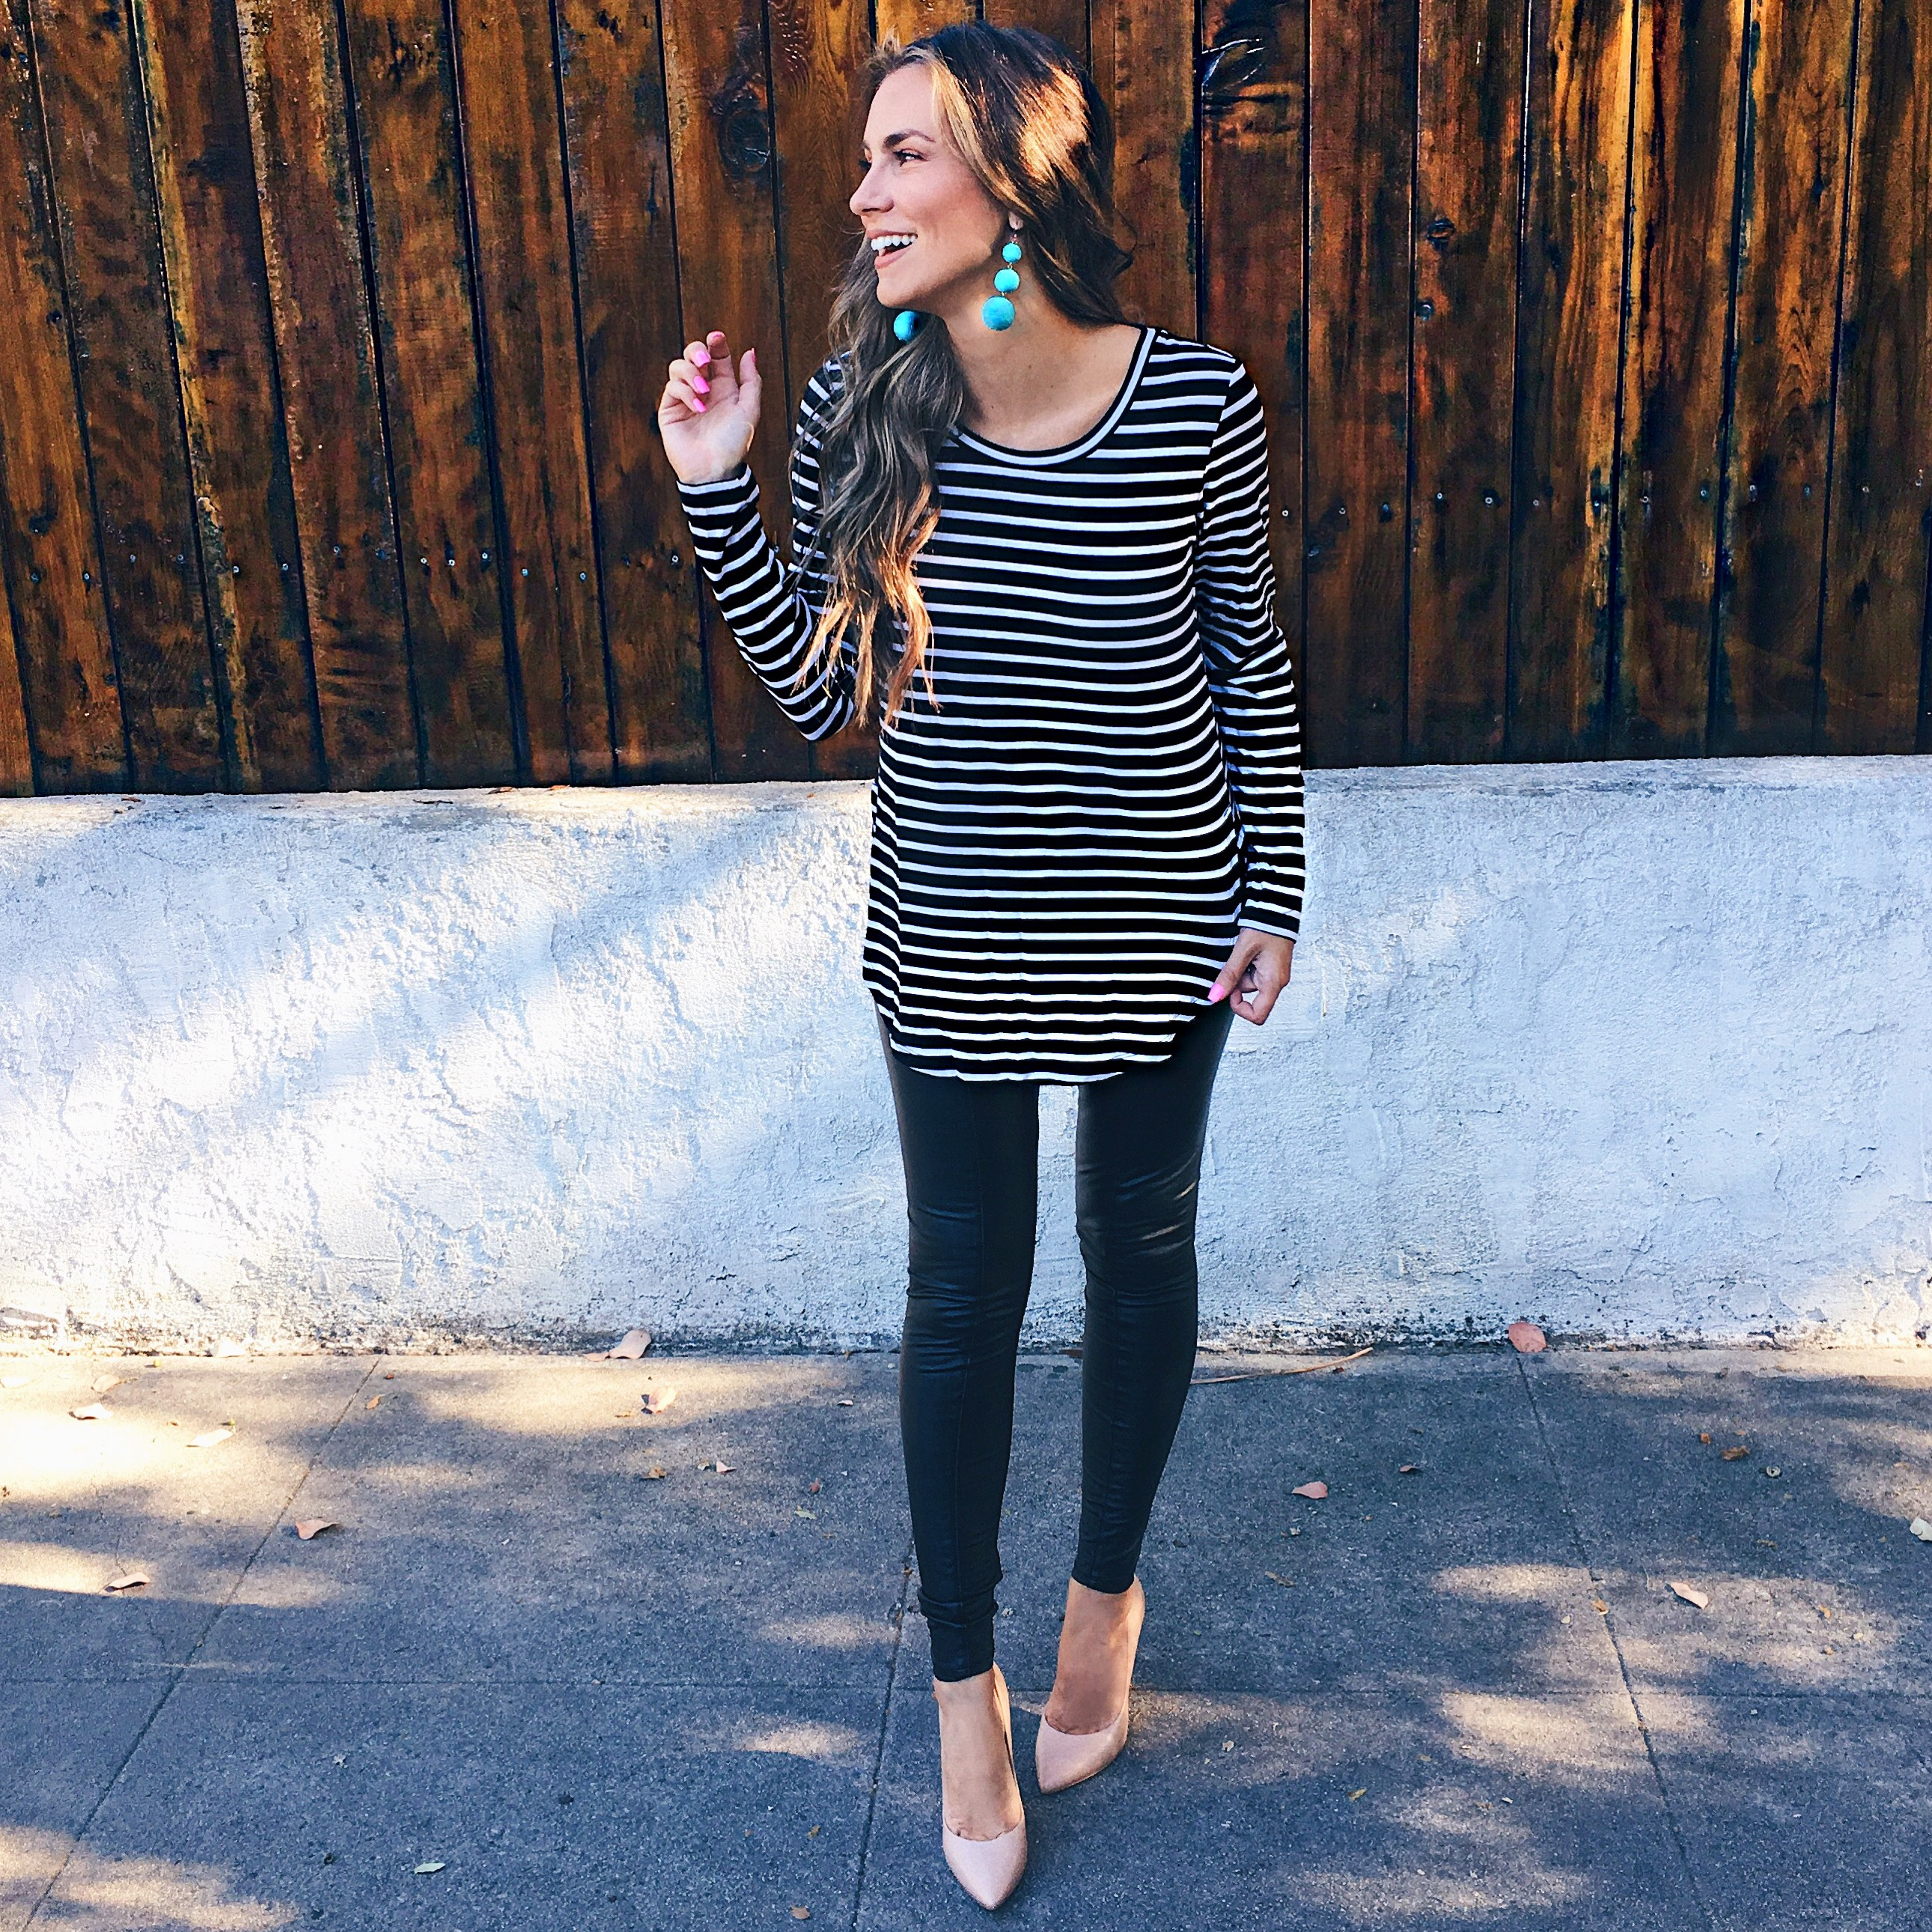 striped tee shirt Lysse faux leather leggings outfit nordstrom anniversary sale angela lanter hello gorgeous